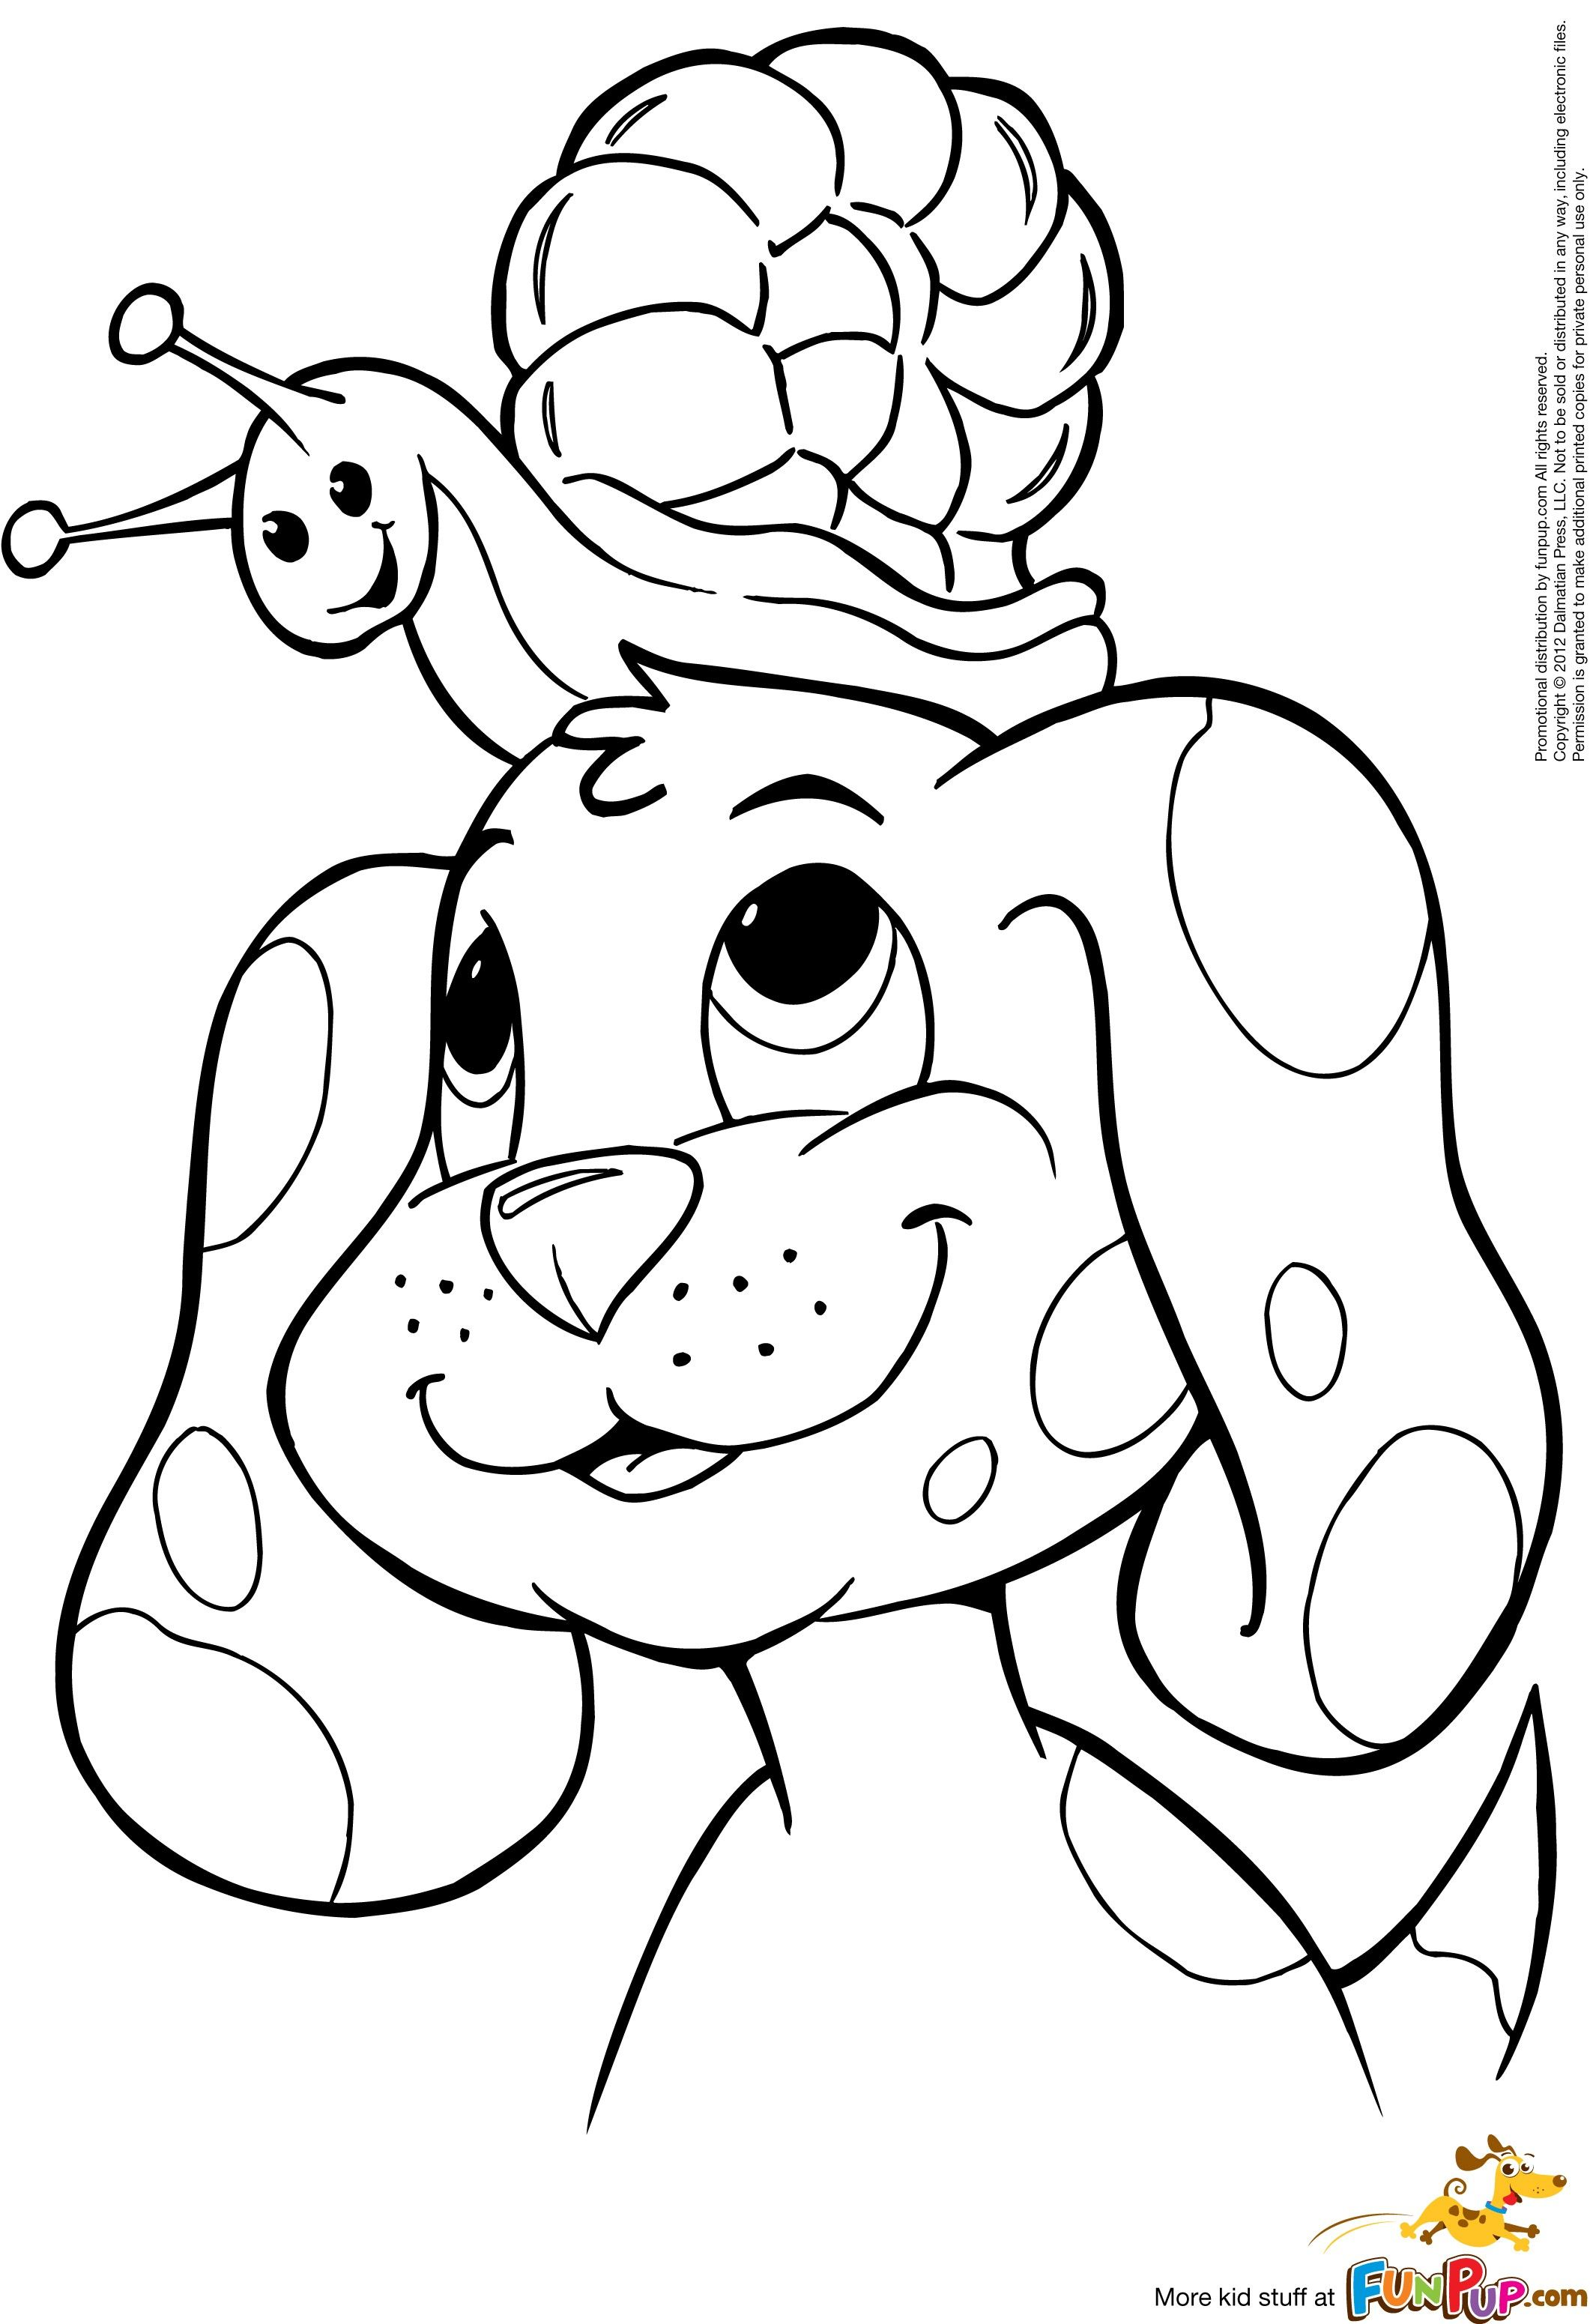 Puppy coloring pages online - Printable Puppy Coloring Pages Animal